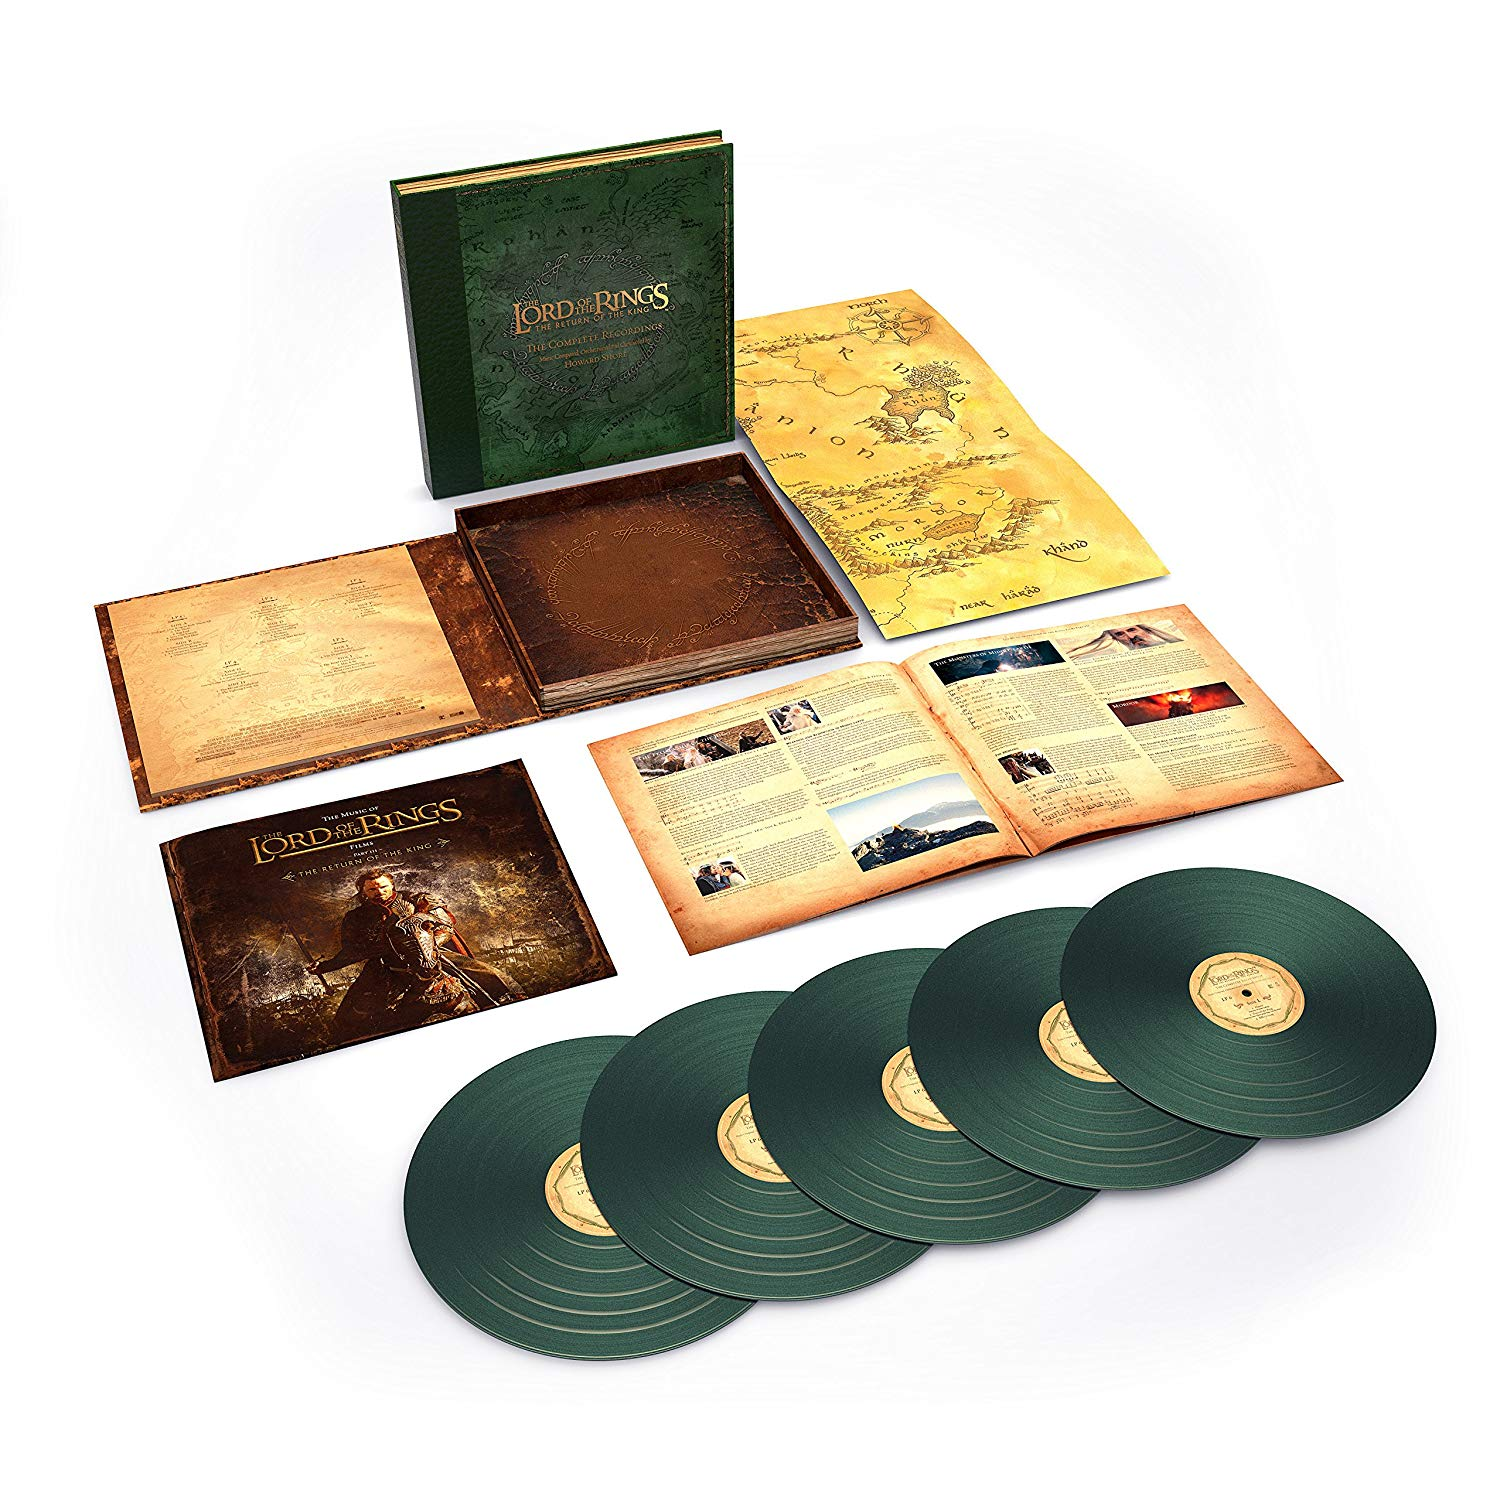 Coffret Vinyle The Lord Of The Rings: The return of the King